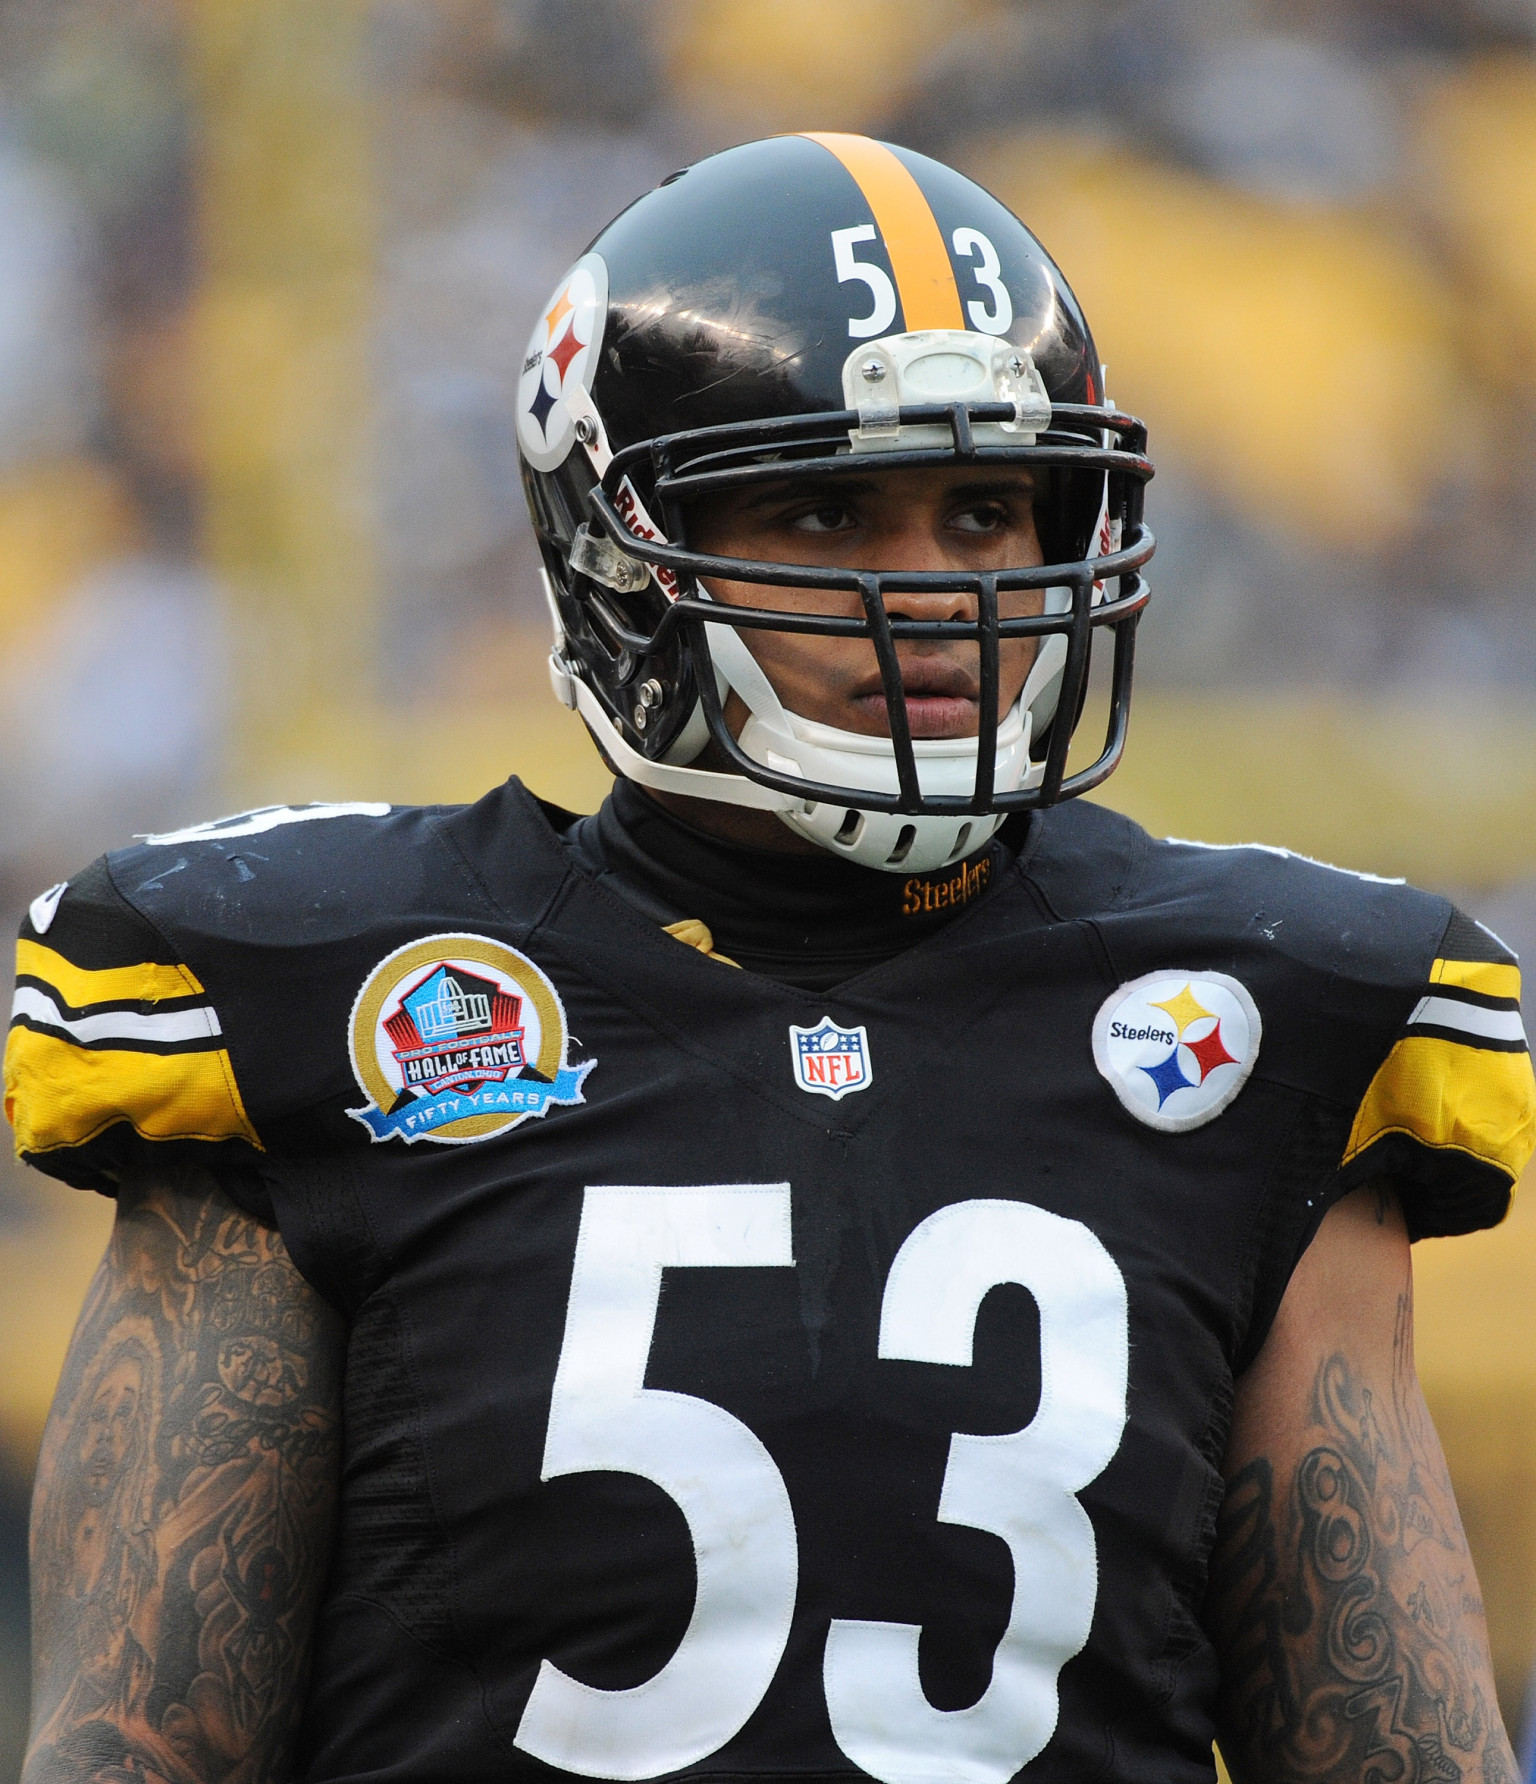 Maurkice Pouncey NFL Player Apologizes For Free Hernandez Hat